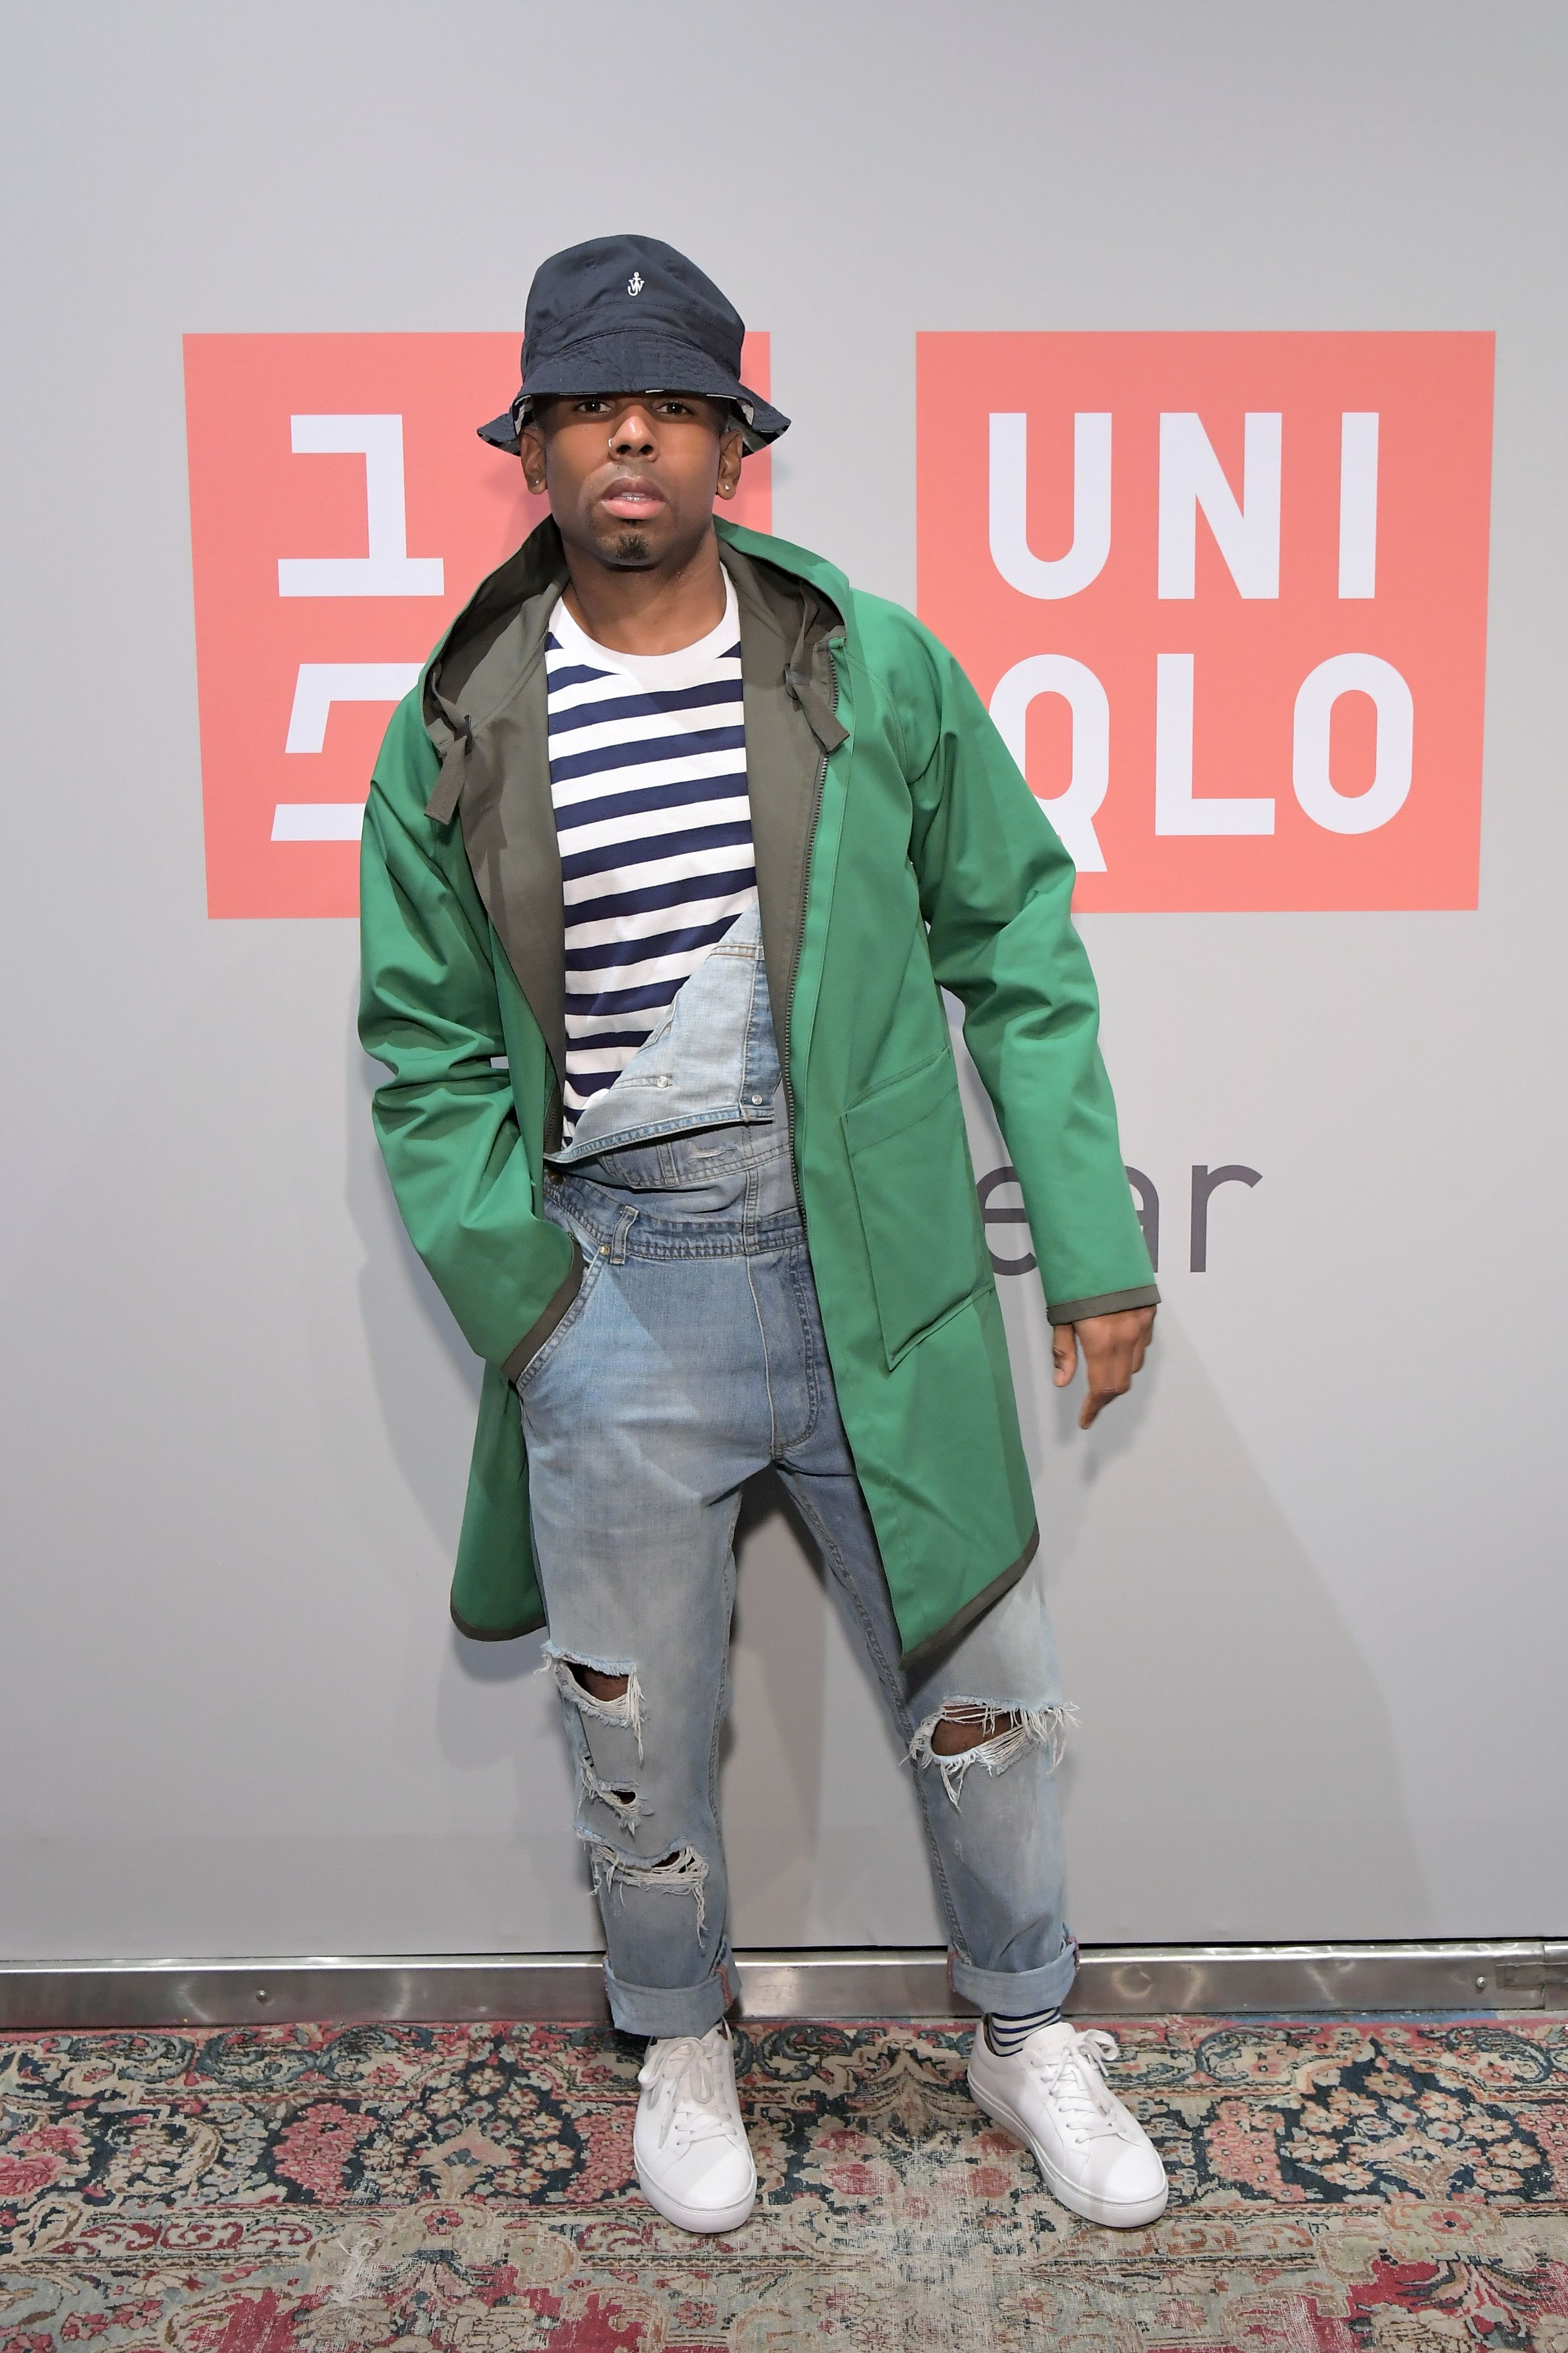 Darren Moulden Darren Moulden attends the UNIQLO 2019 Collections Celebration at Smogshoppe  in Los Angeles, California on March 7.